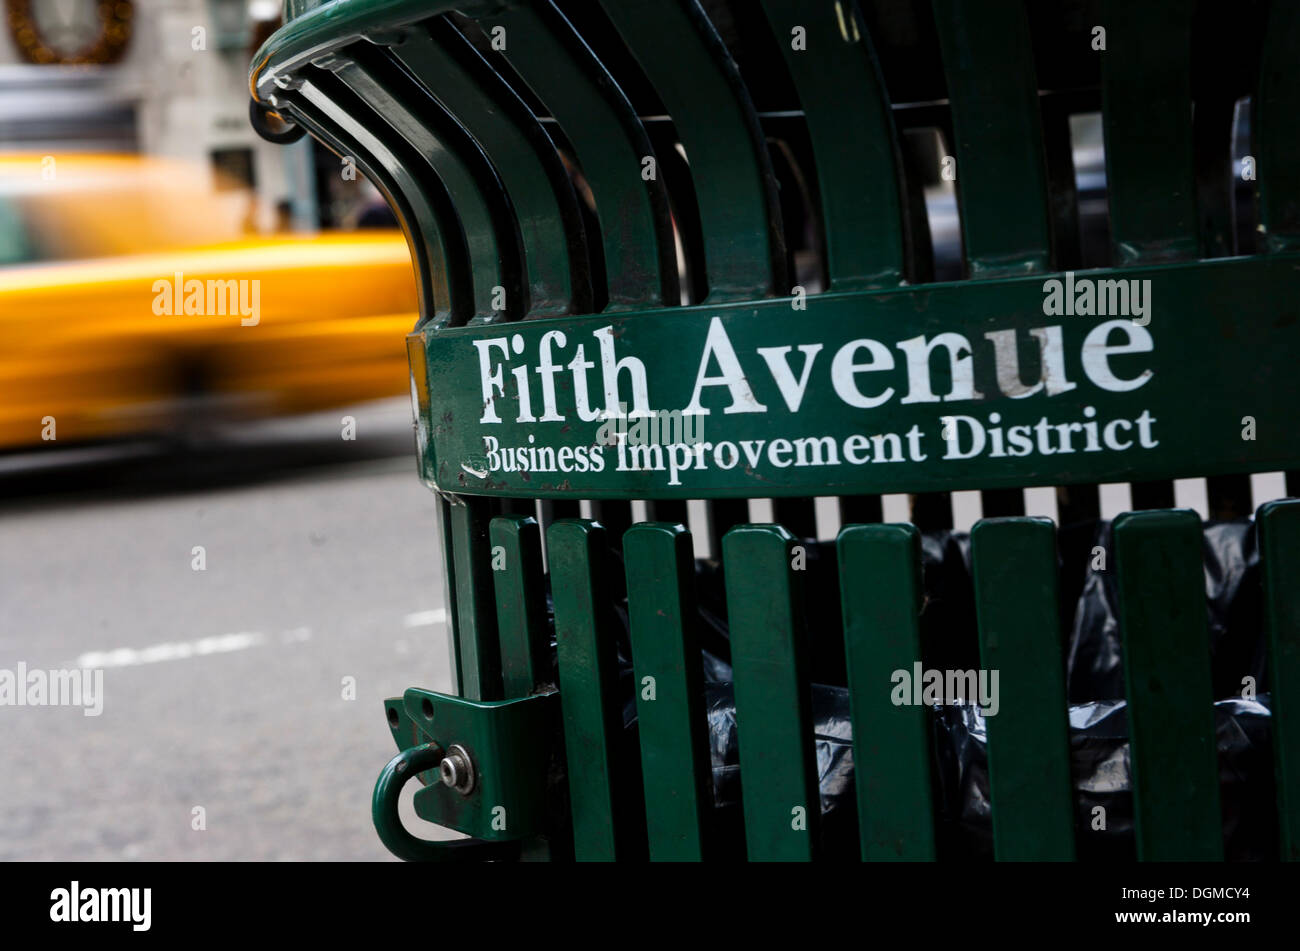 A trash can on Fifth Avenue, New York City, USA - Stock Image